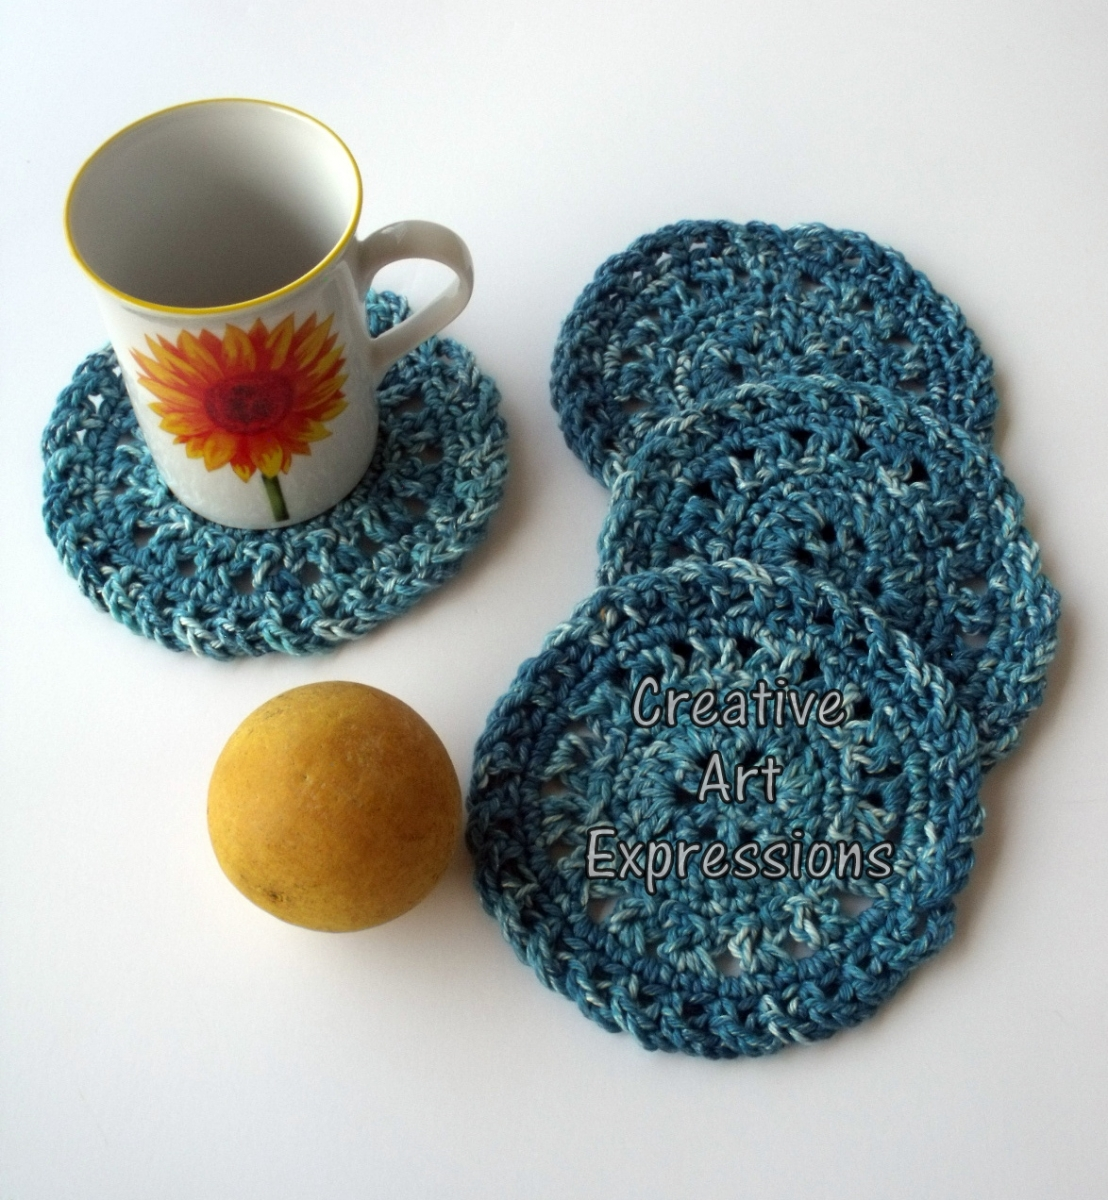 Teal Round Cotton Crocheted Coasters